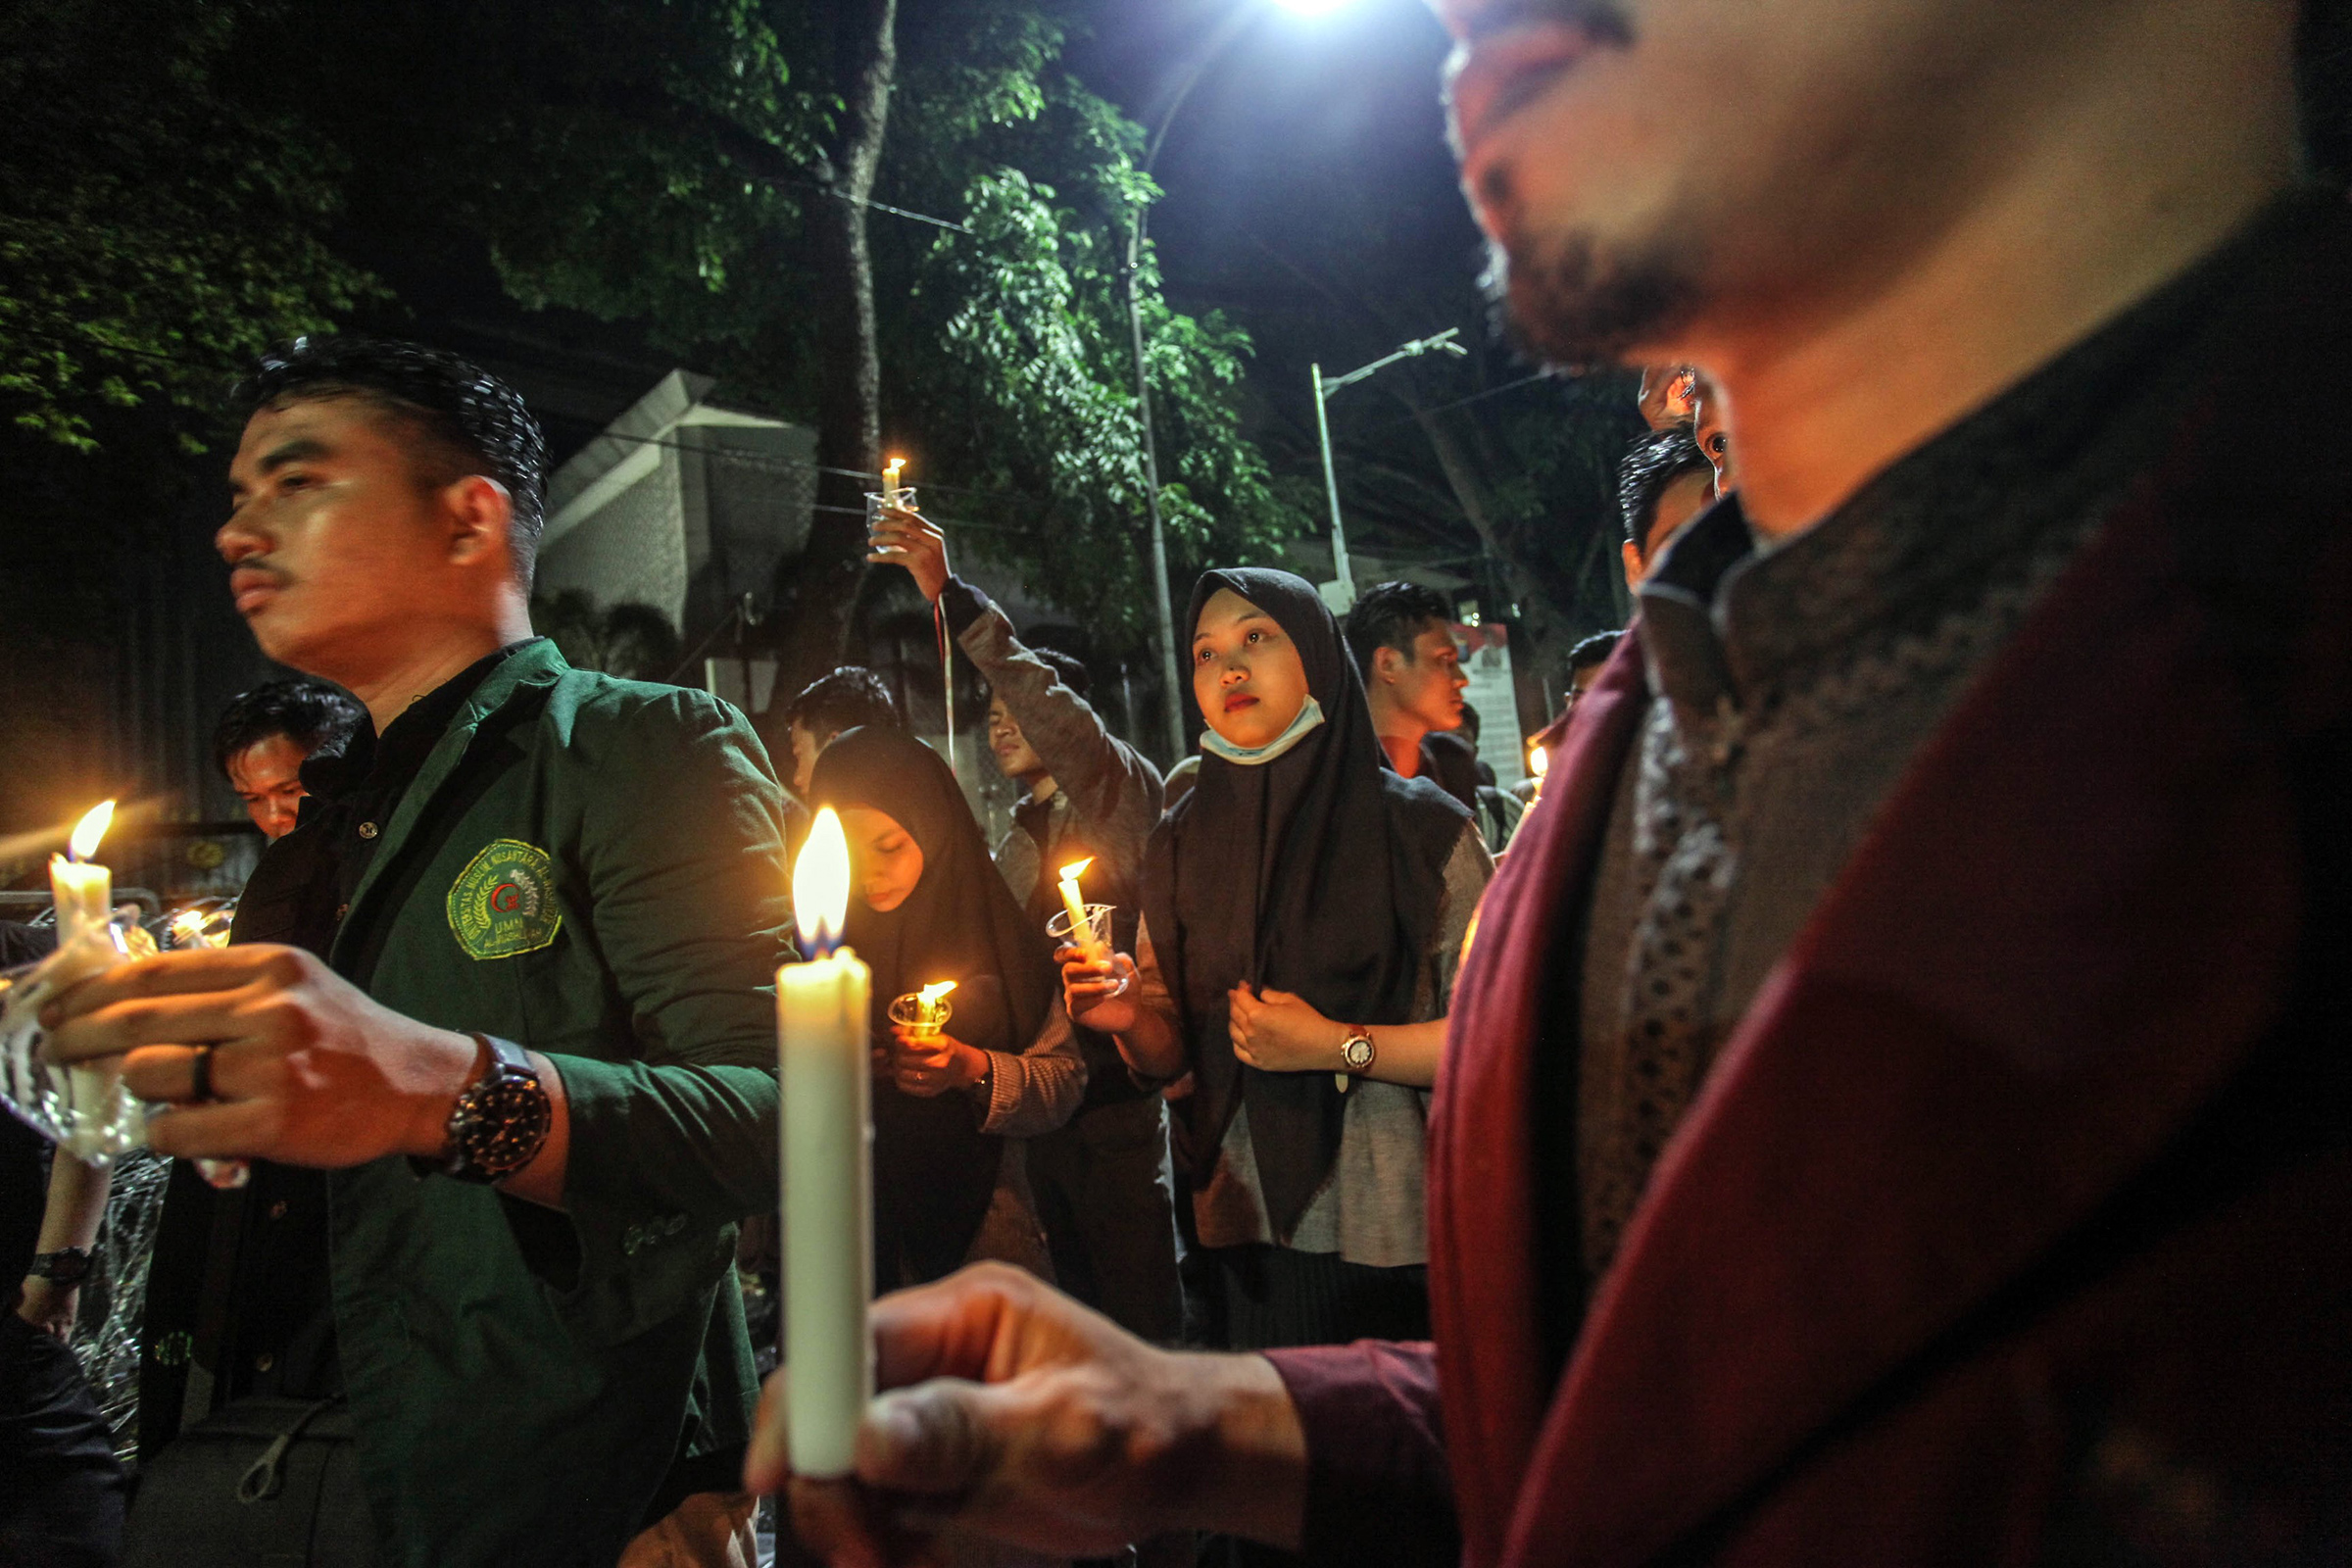 Indonesian students hold candles during a protest in Medan, Indonesia on Oct. 1, 2019 against the government's proposed change in its criminal code laws, plans to weaken the anti-corruption commission and riot victims in Wamena